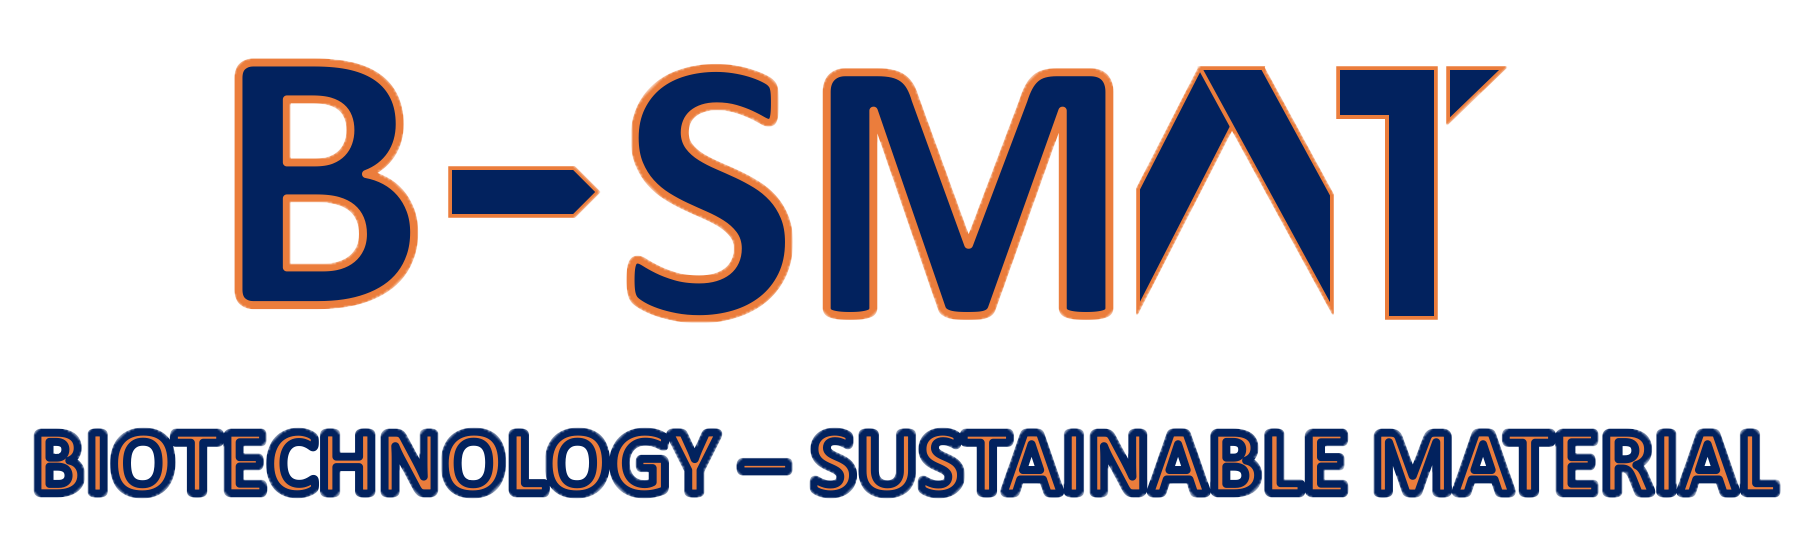 OFFICIAL LOGO BSMAT png